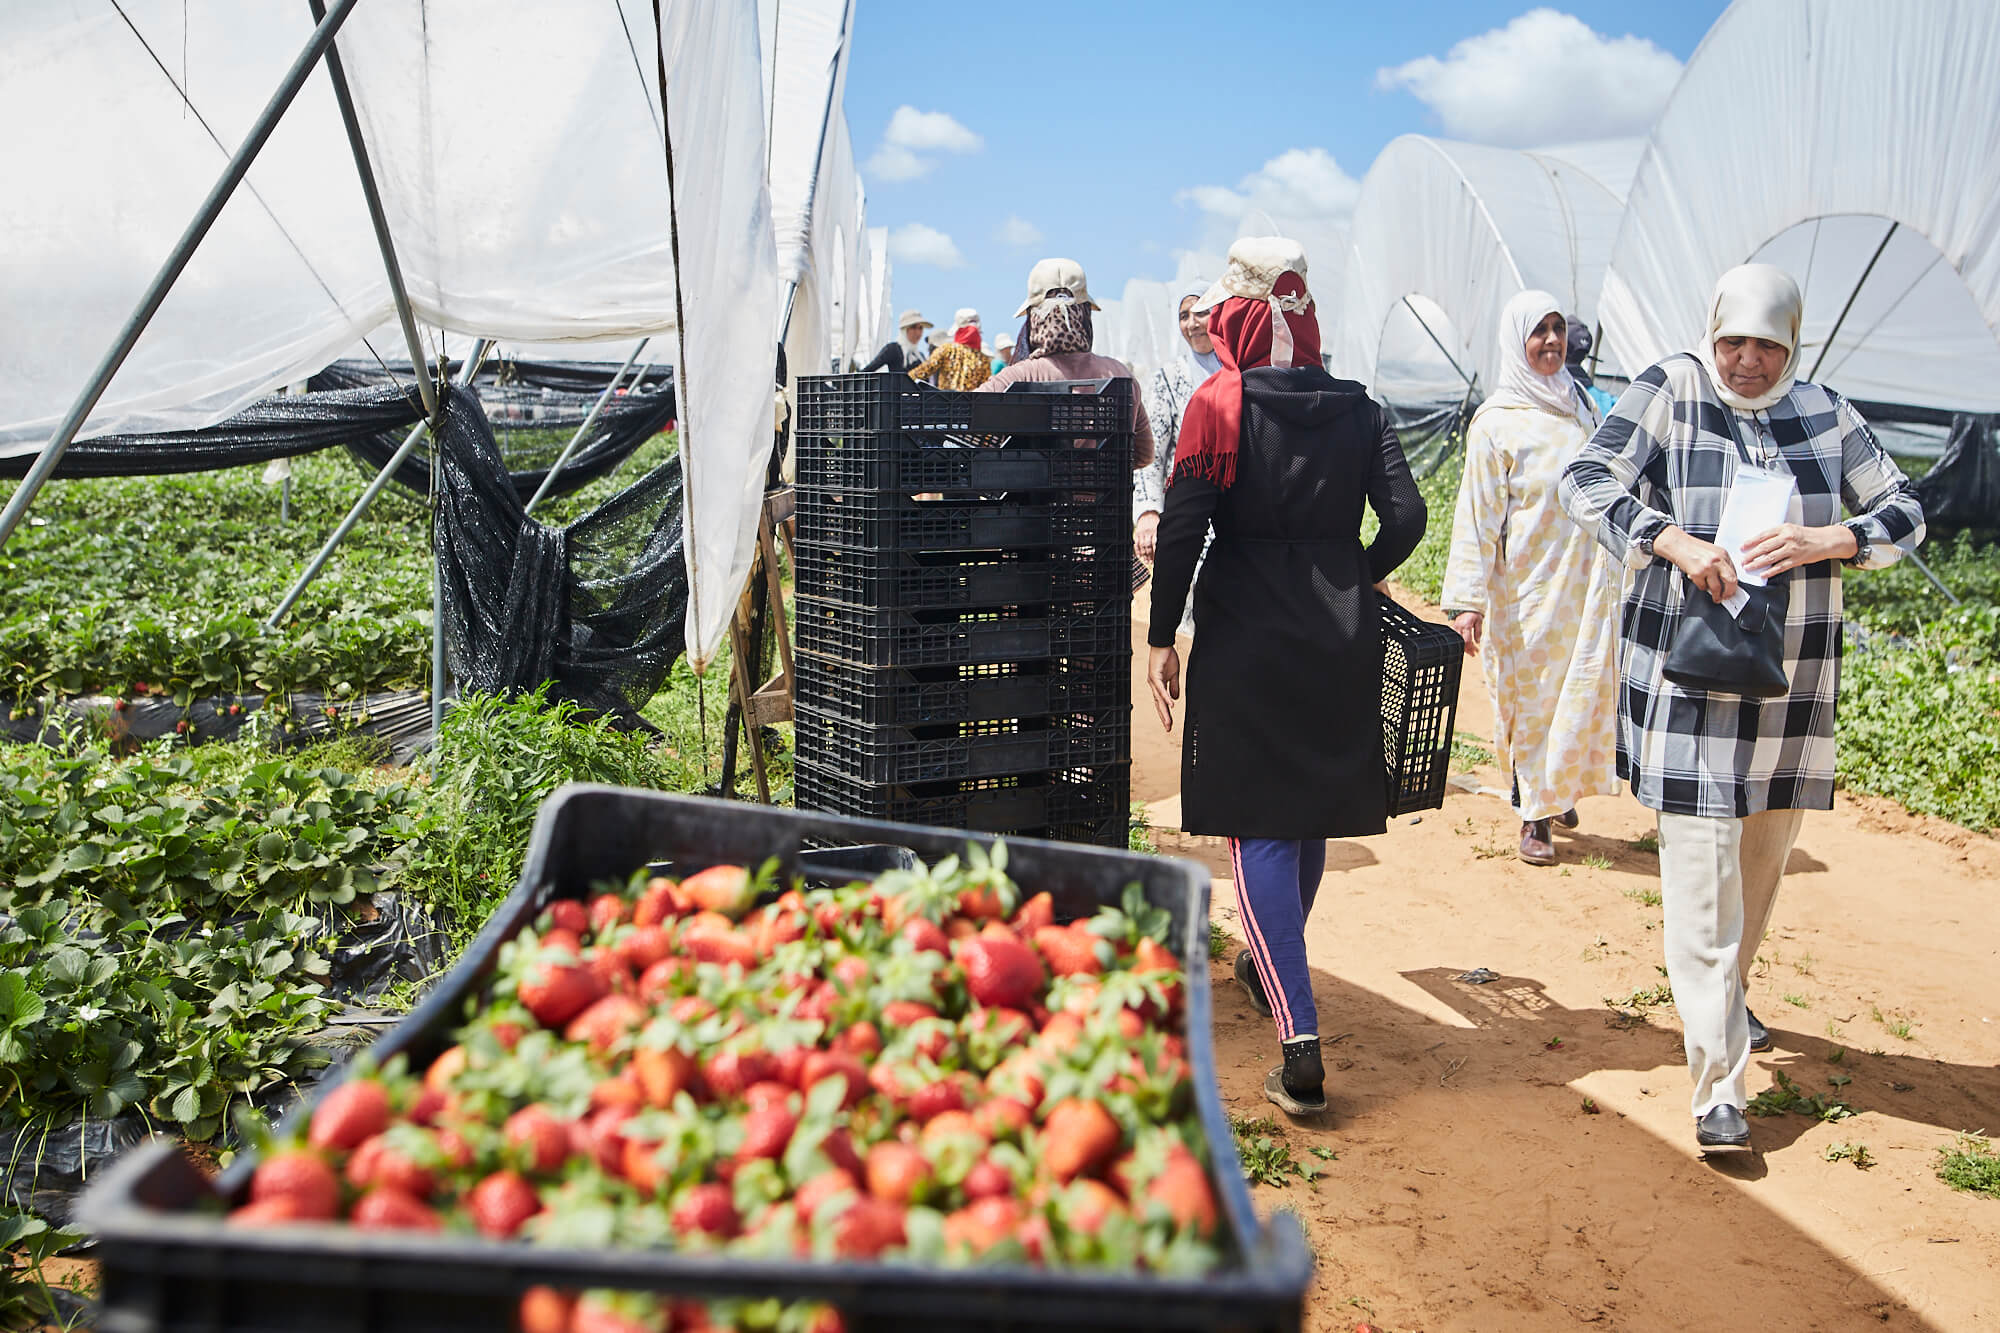 Bringing young people into the agricultural sector